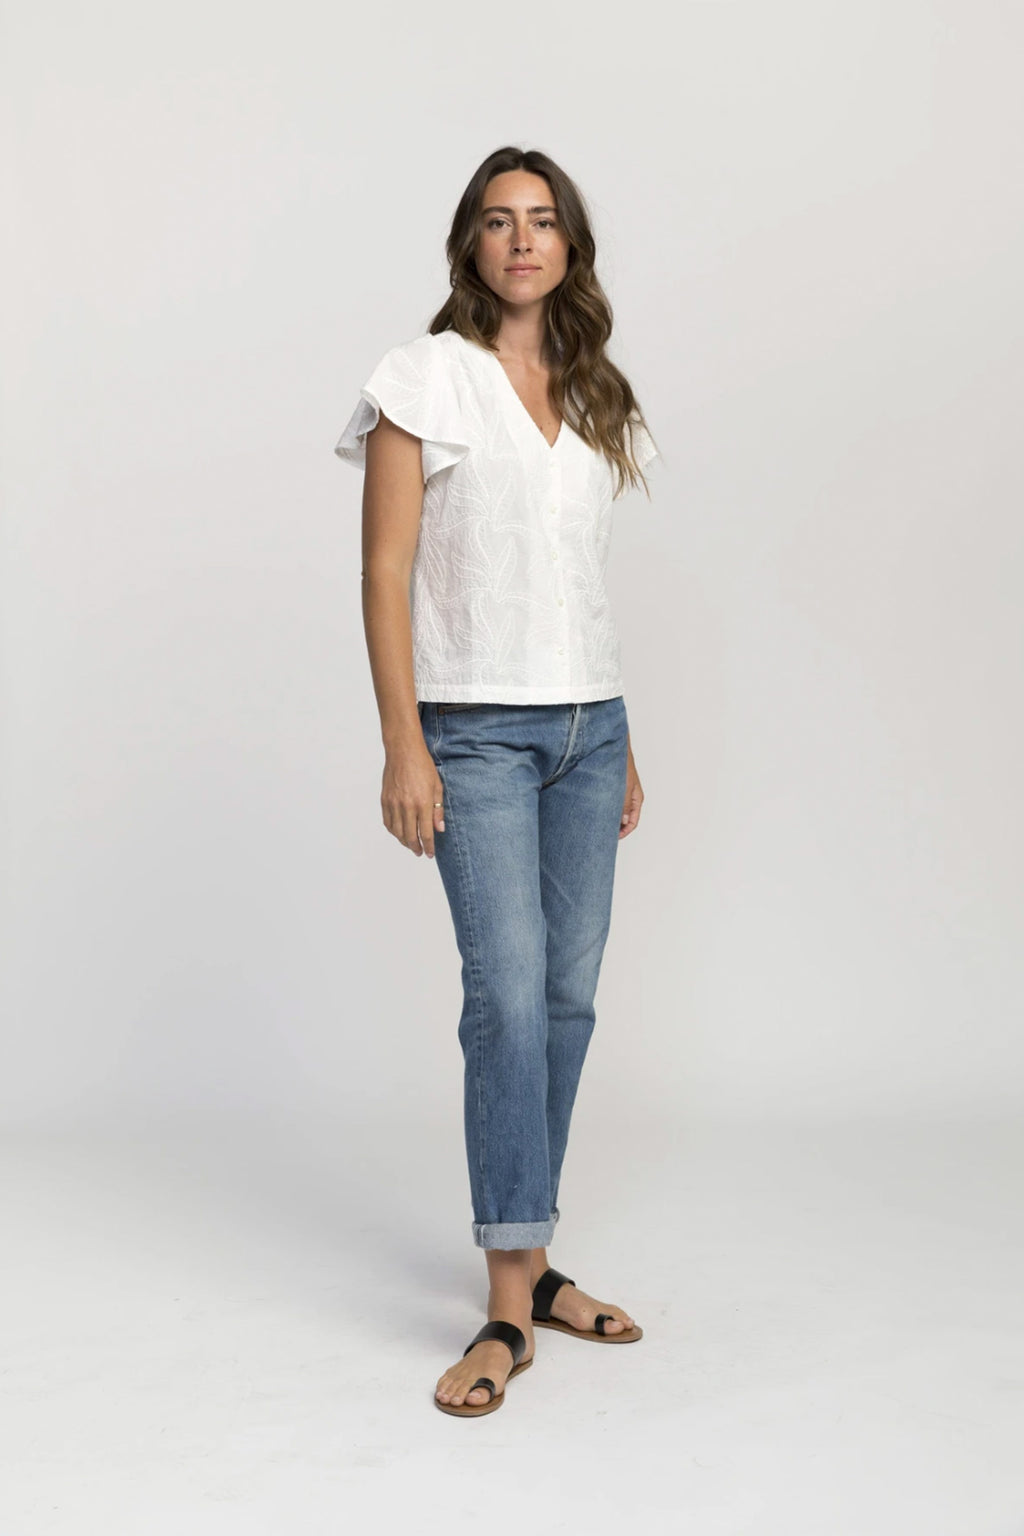 Trovata Angela Flutter Sleeve Blouse in White Embroidery